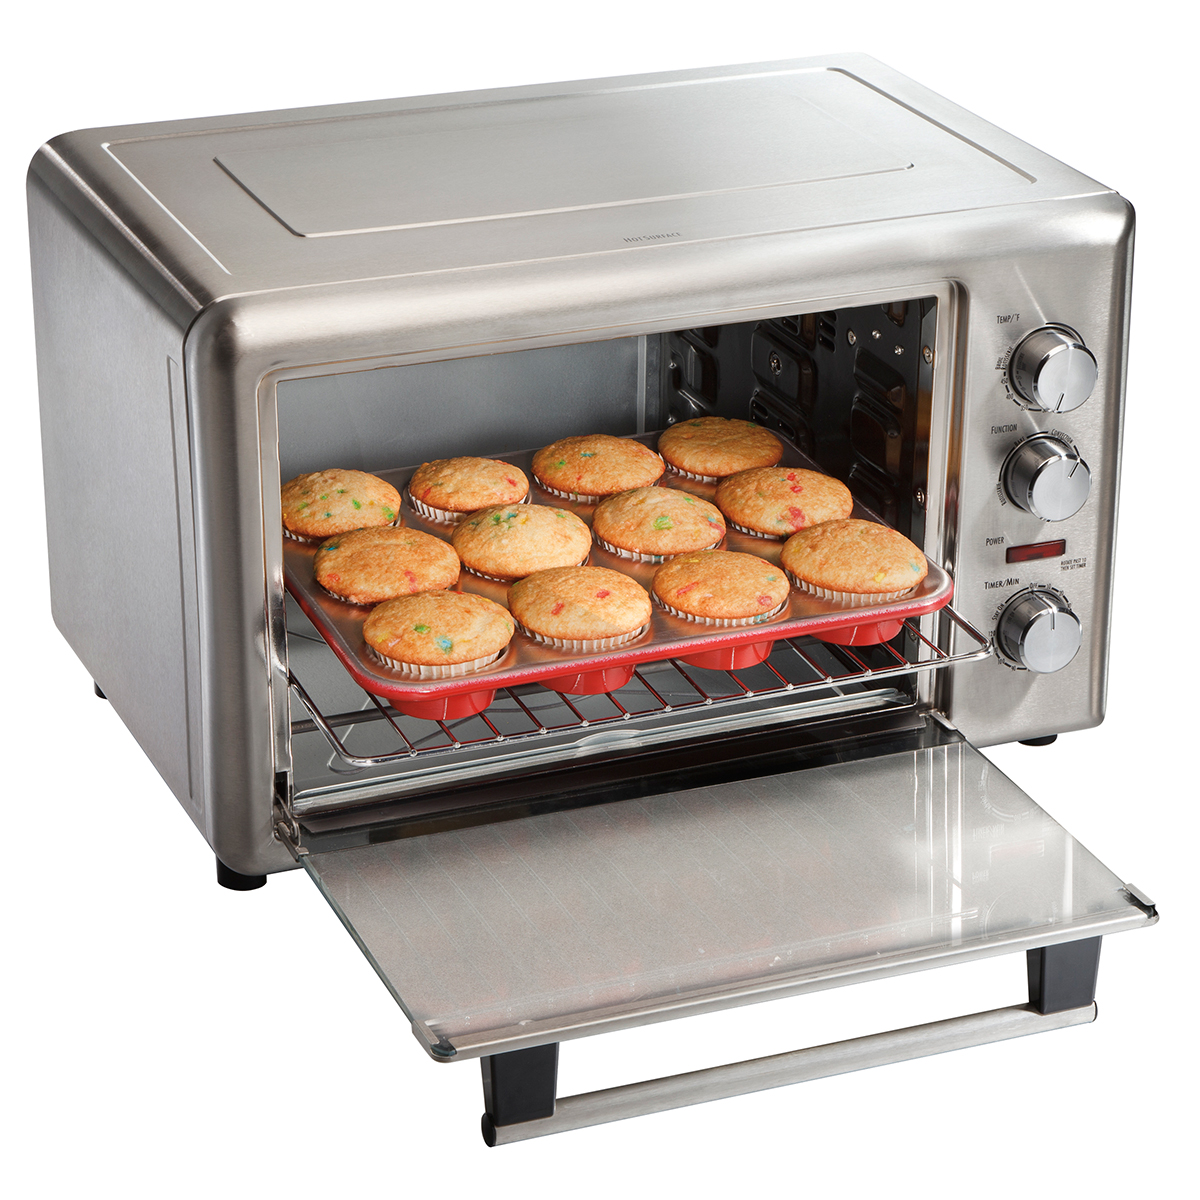 Countertop Oven - 31103 - Stainless - HamiltonBeach.com